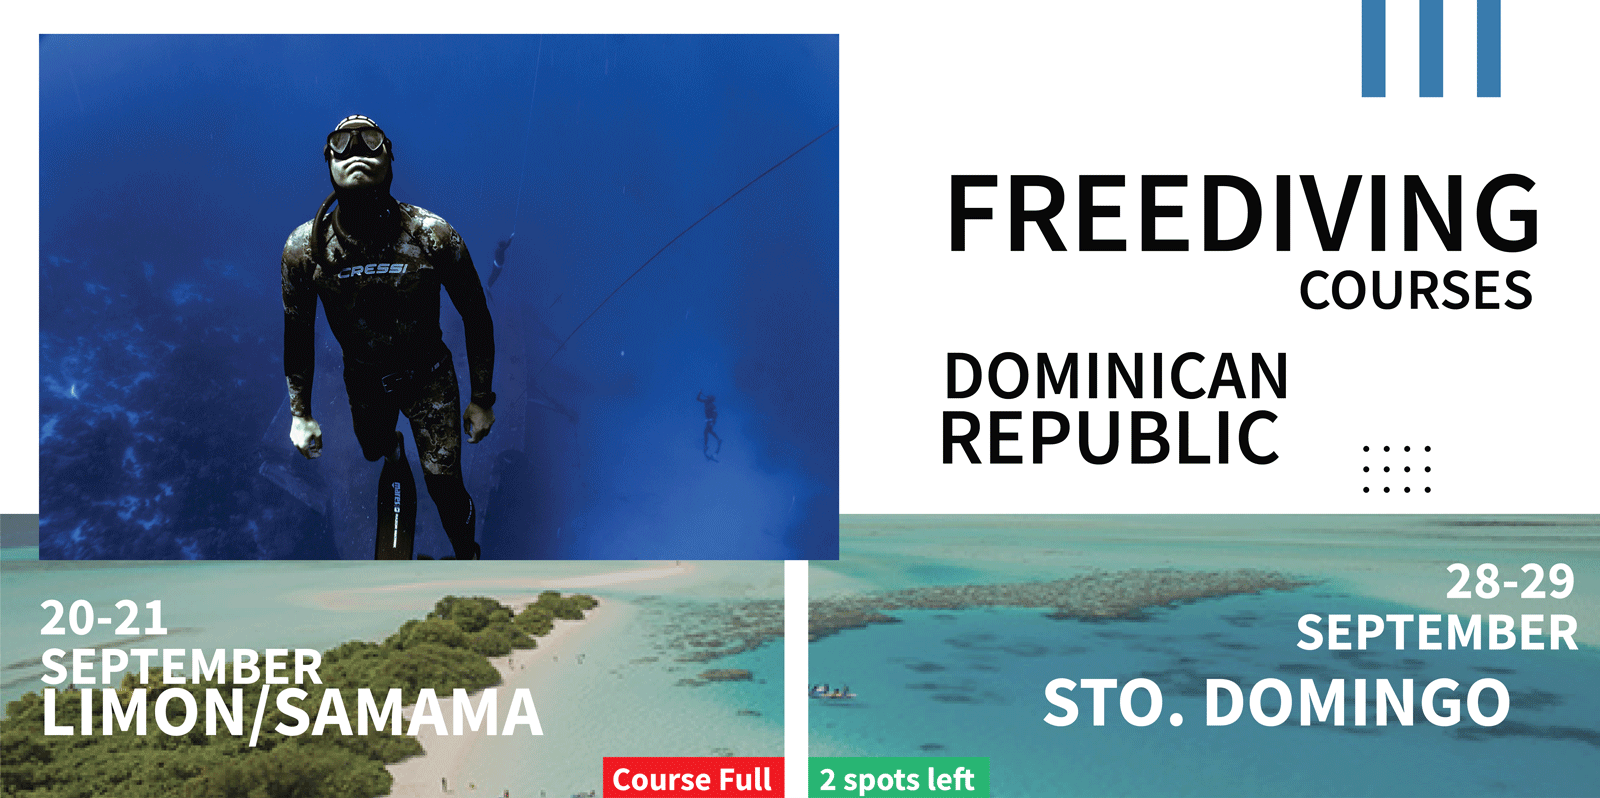 dominican republic freediving course